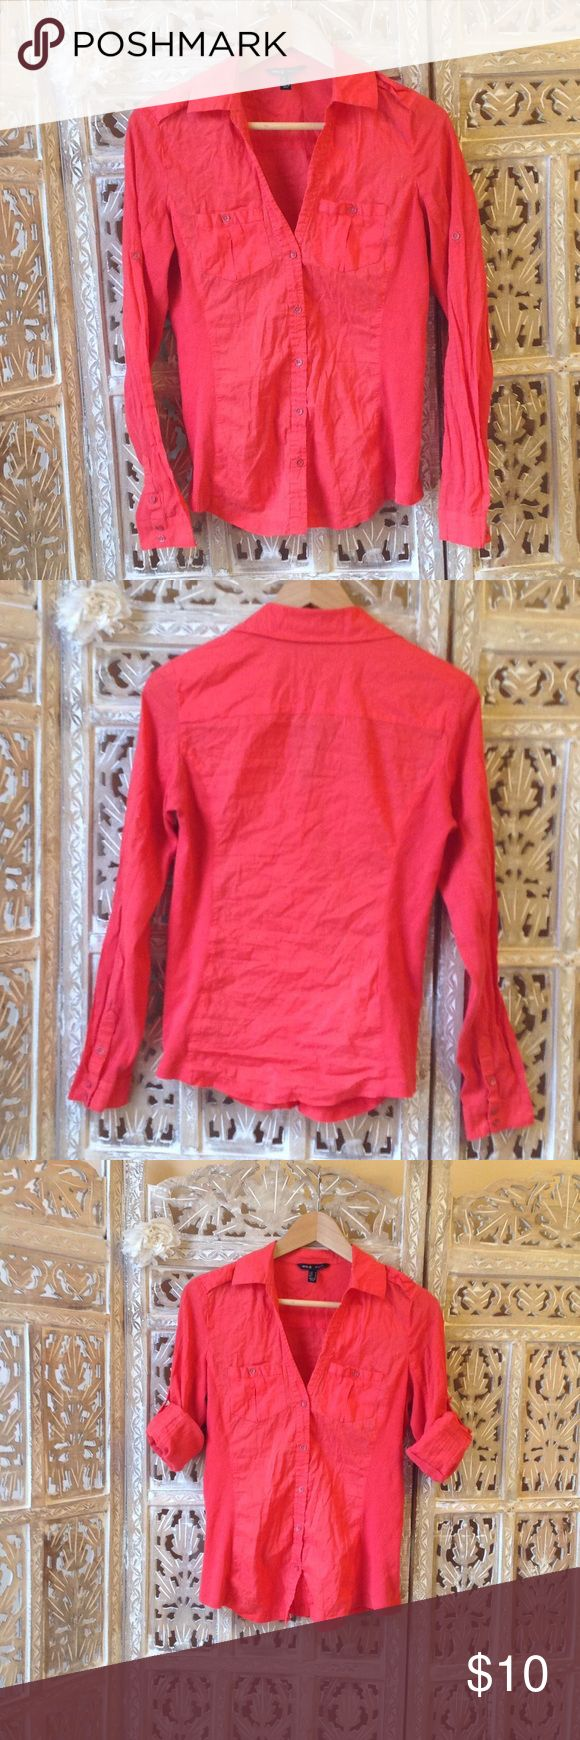 Mango button down red blouse size M MNG (Mango, Spain cloth designer store) casual button down pink shirt. Size M.Rolled up sleeves. Extremely soft.  Very good condition. Mango Tops Button Down Shirts